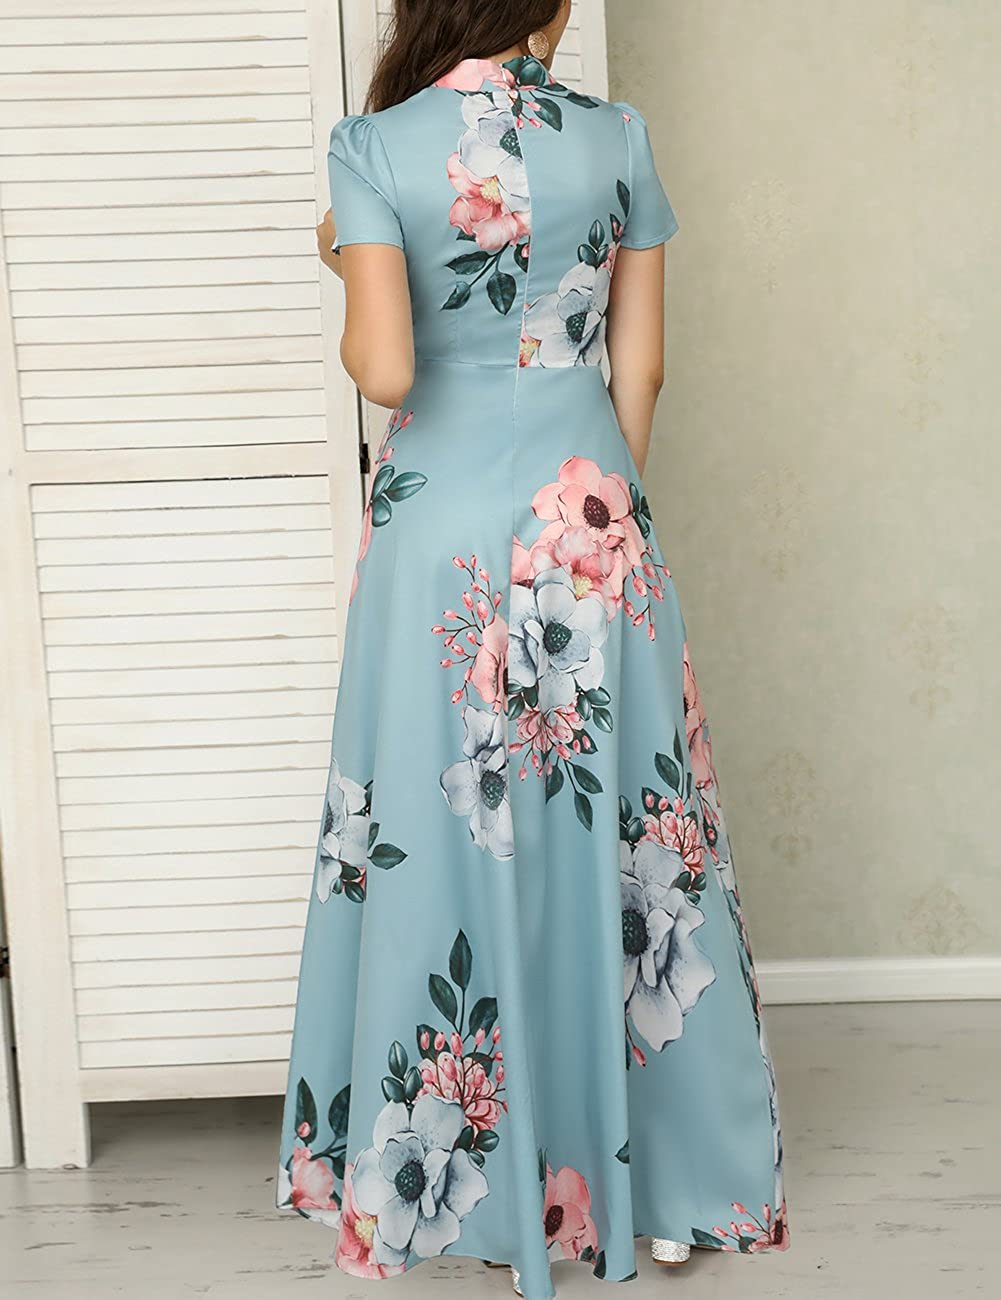 09ef0ad2245 Ivrose Womens Short Sleeves Floral Maxi Dress Lake Blue M at Amazon Women s  Clothing store